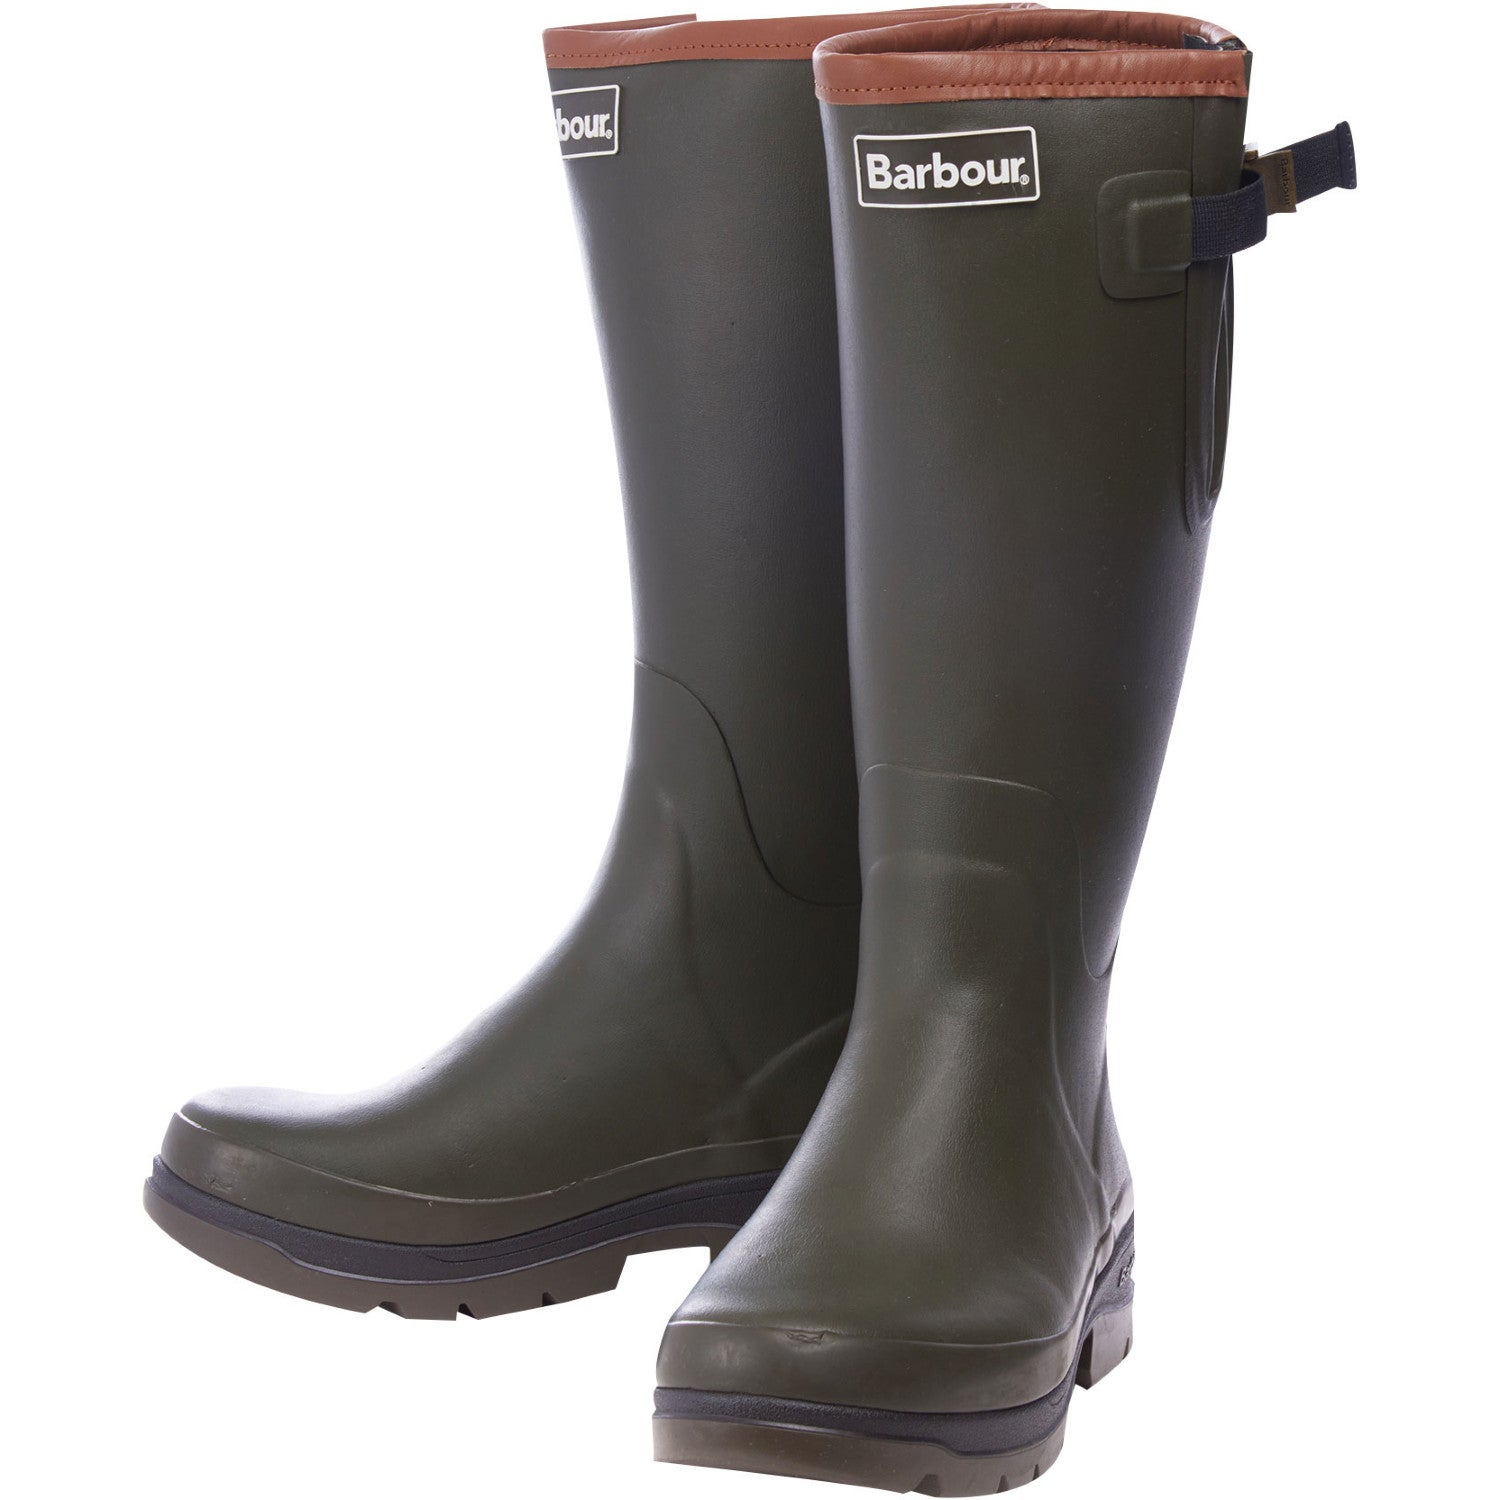 Barbour Tempest Wellies